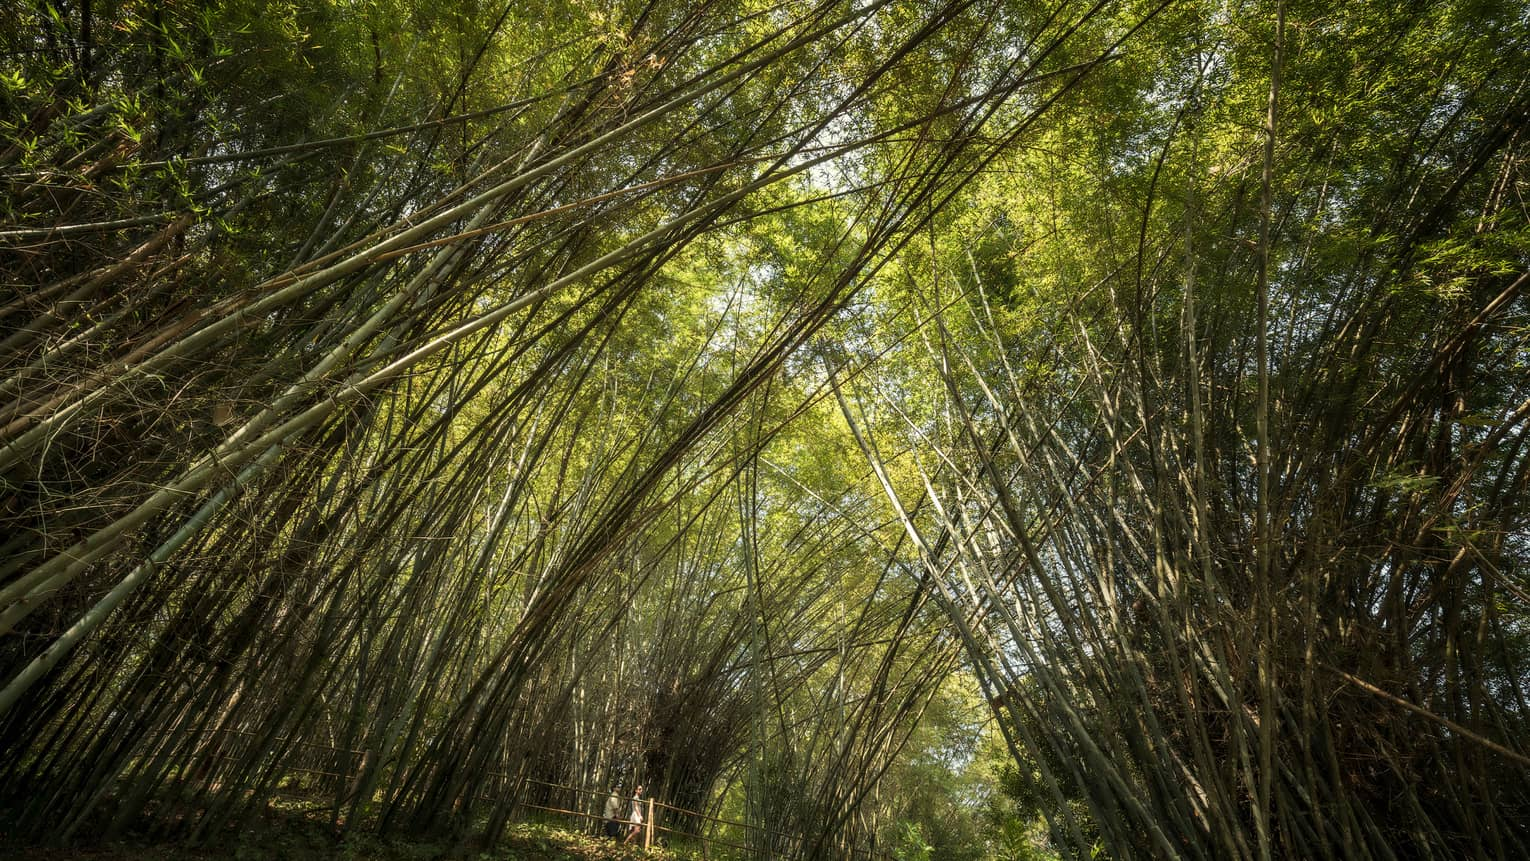 Two people walk under tall bamboo tree canopy in forest